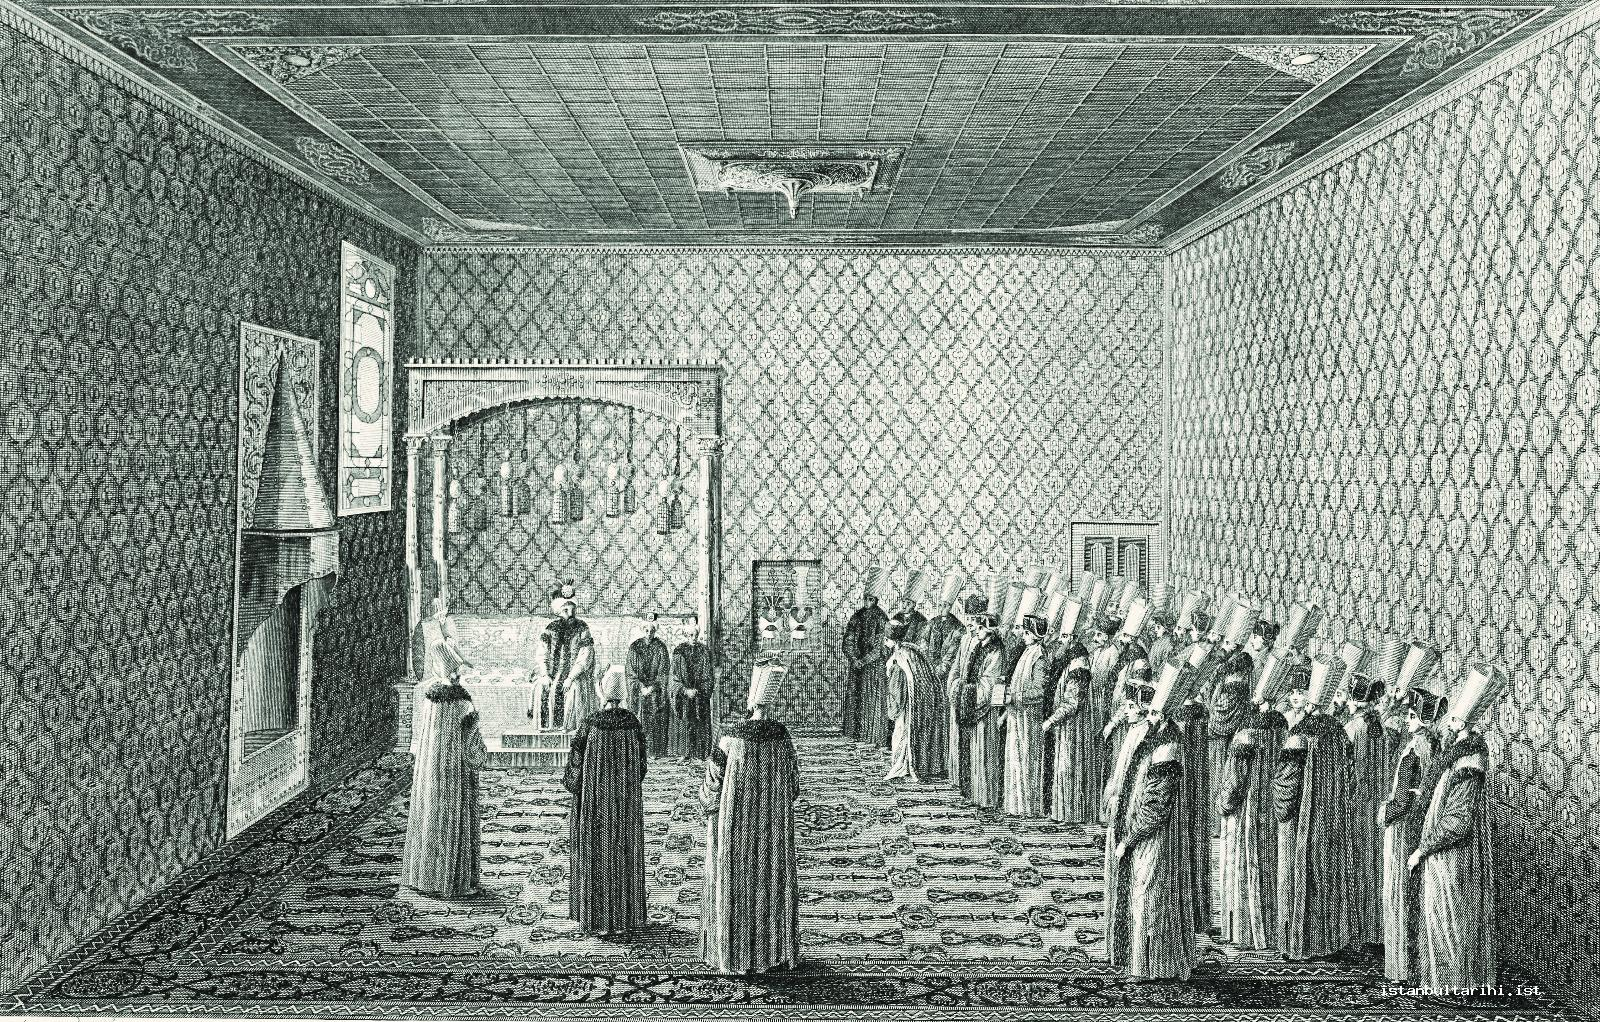 8- Sultan Selim III's admission of an ambassador in the admission hall (d'Ohsson)